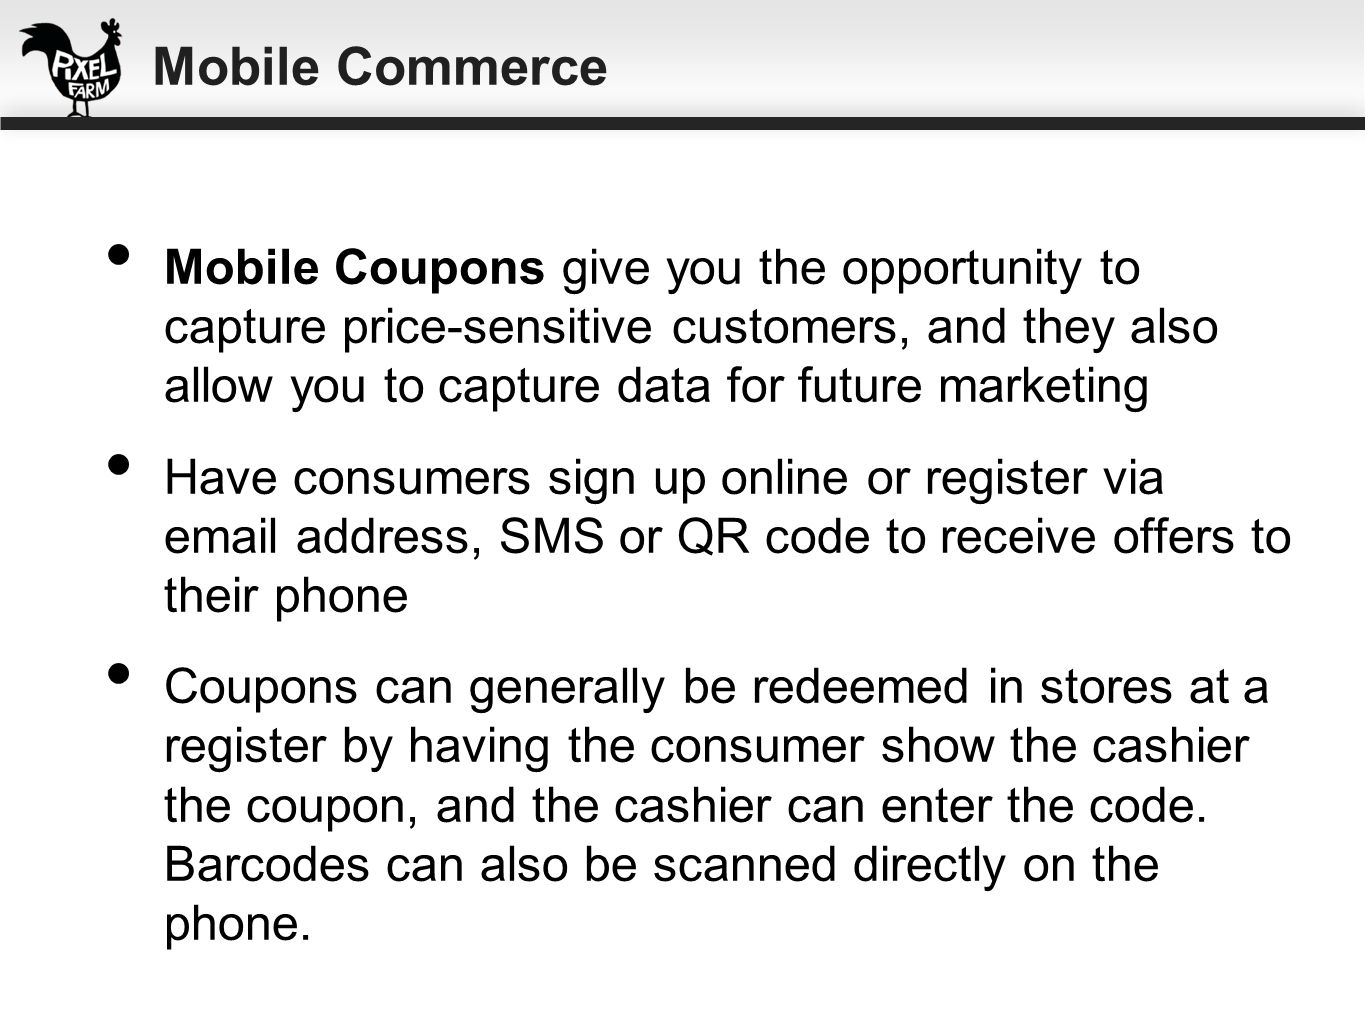 Mobile Coupons give you the opportunity to capture price-sensitive customers, and they also allow you to capture data for future marketing Have consum